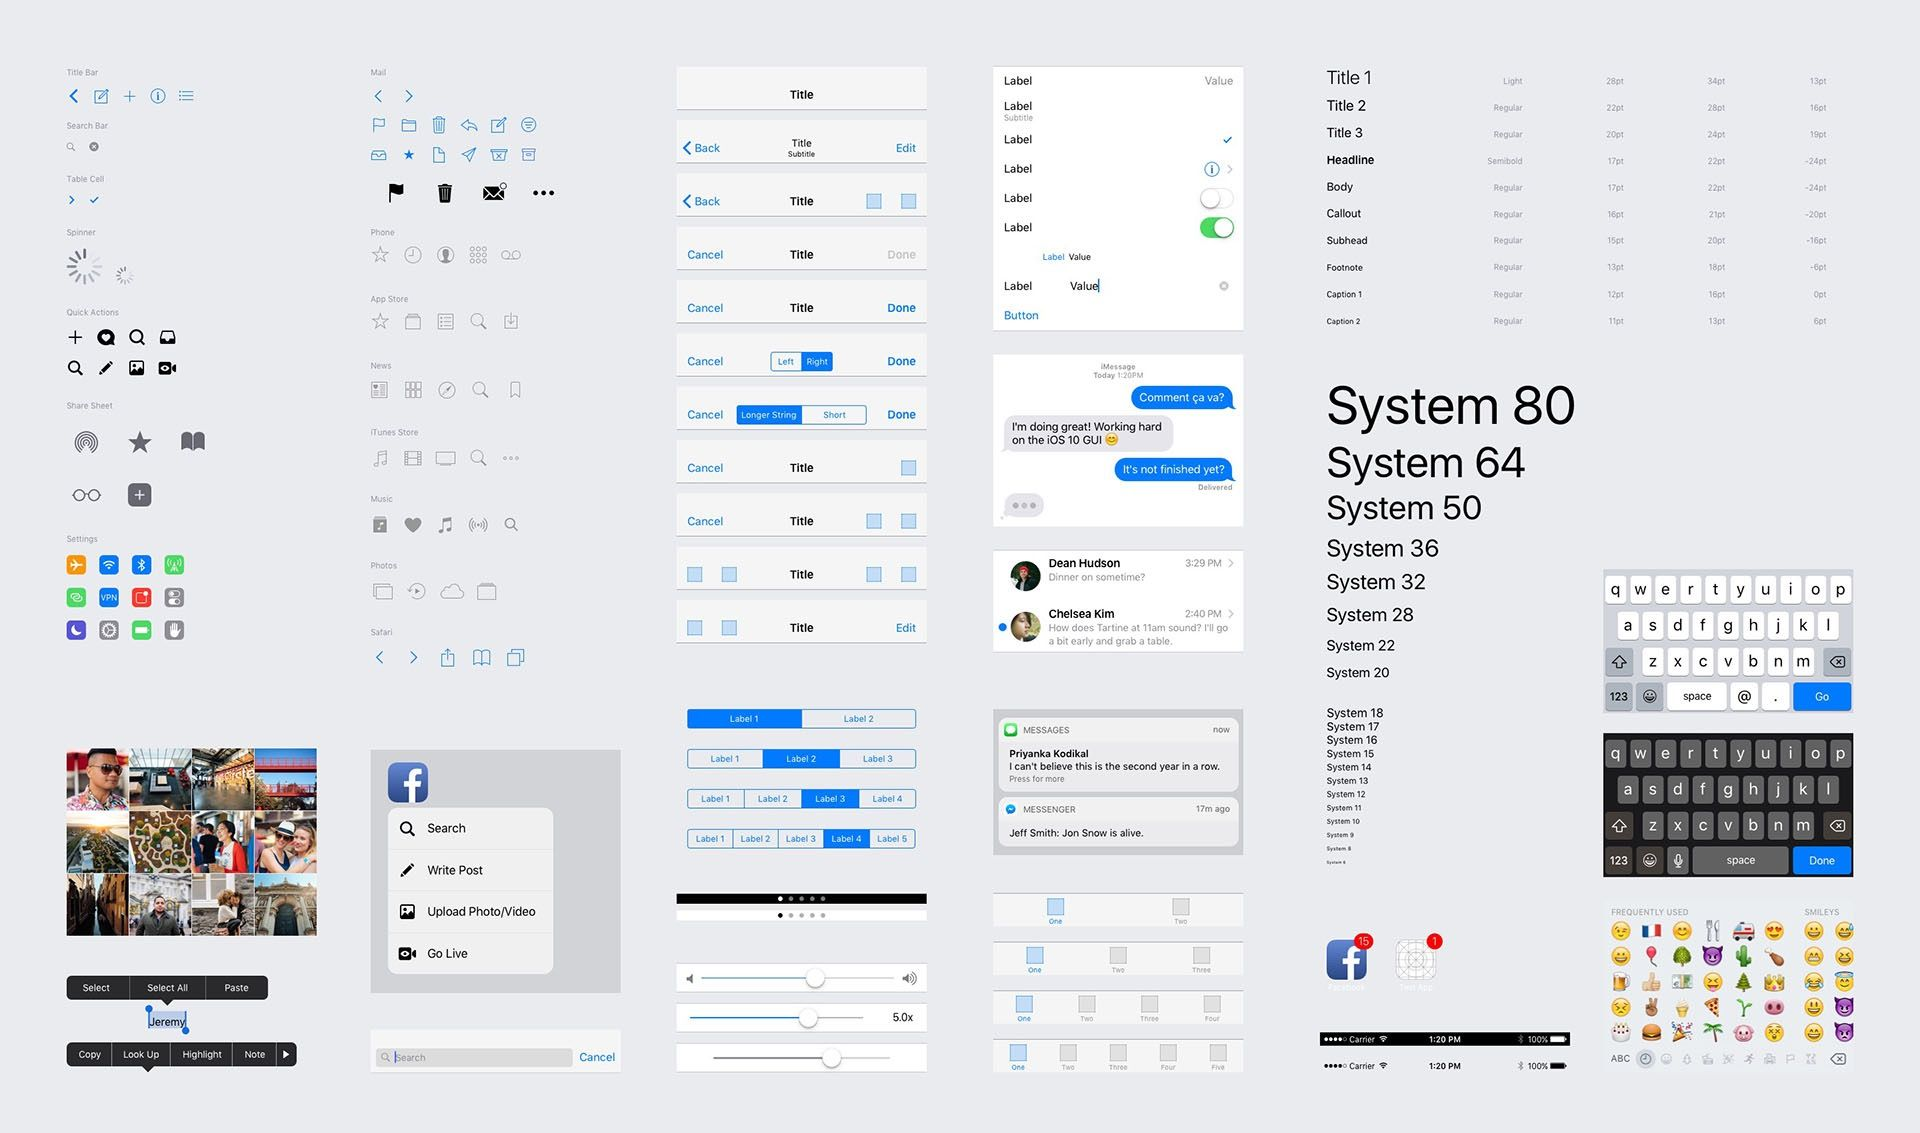 Free Download: iOS 10 UI Kit (iPhone) for Sketch, Photoshop, Figma